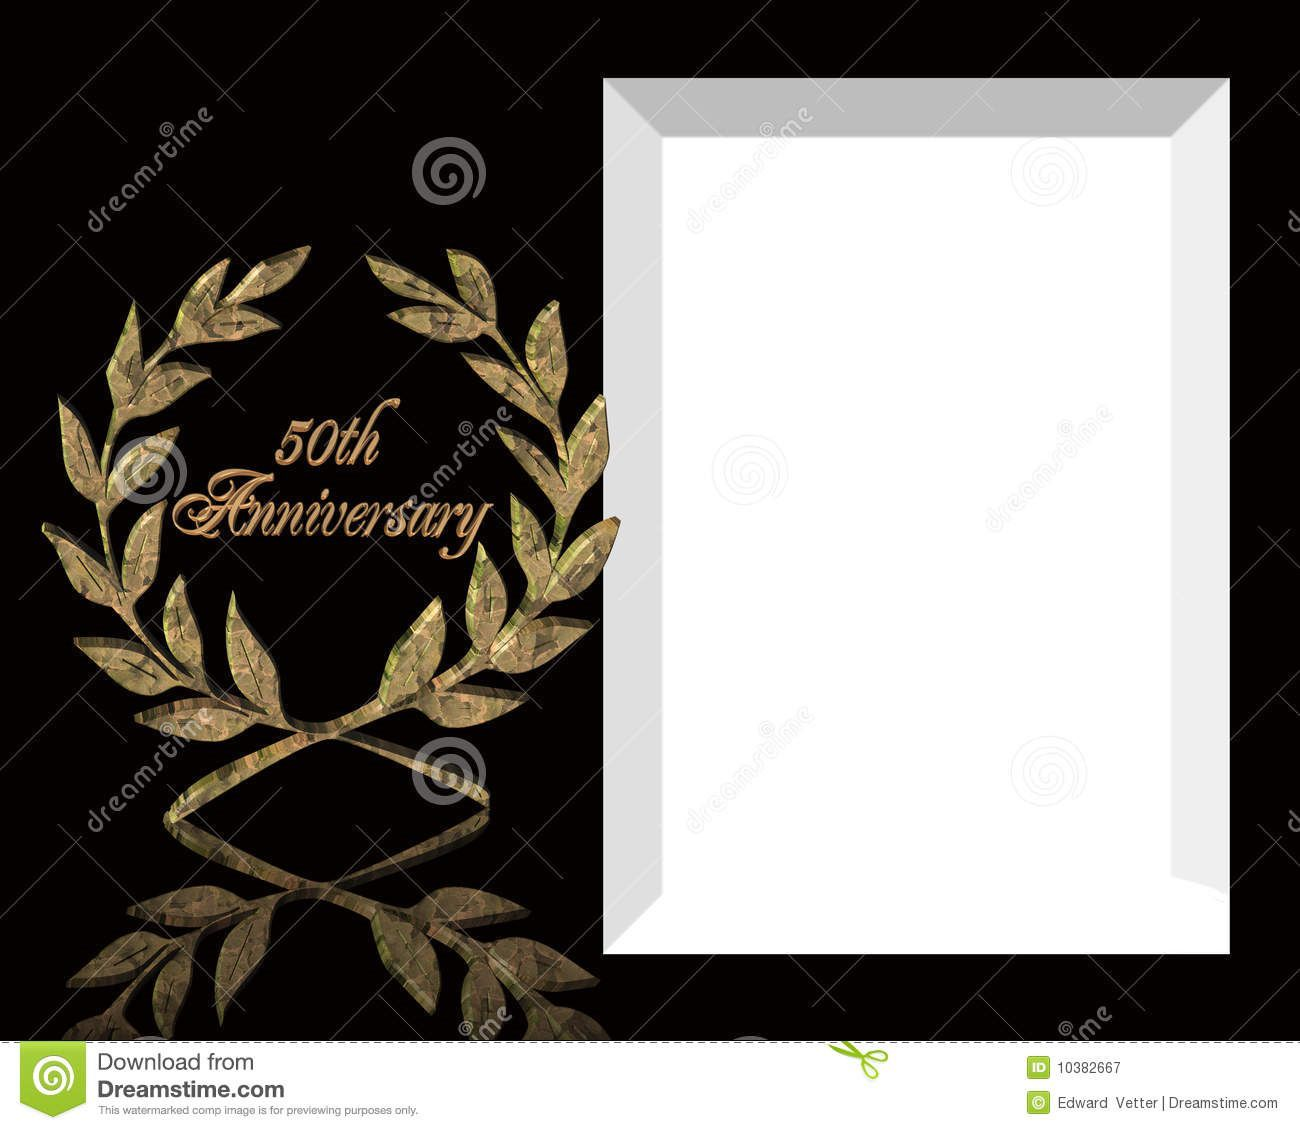 004 Unique 50th Wedding Anniversary Invitation Template Free Download Highest Clarity  GoldenFull